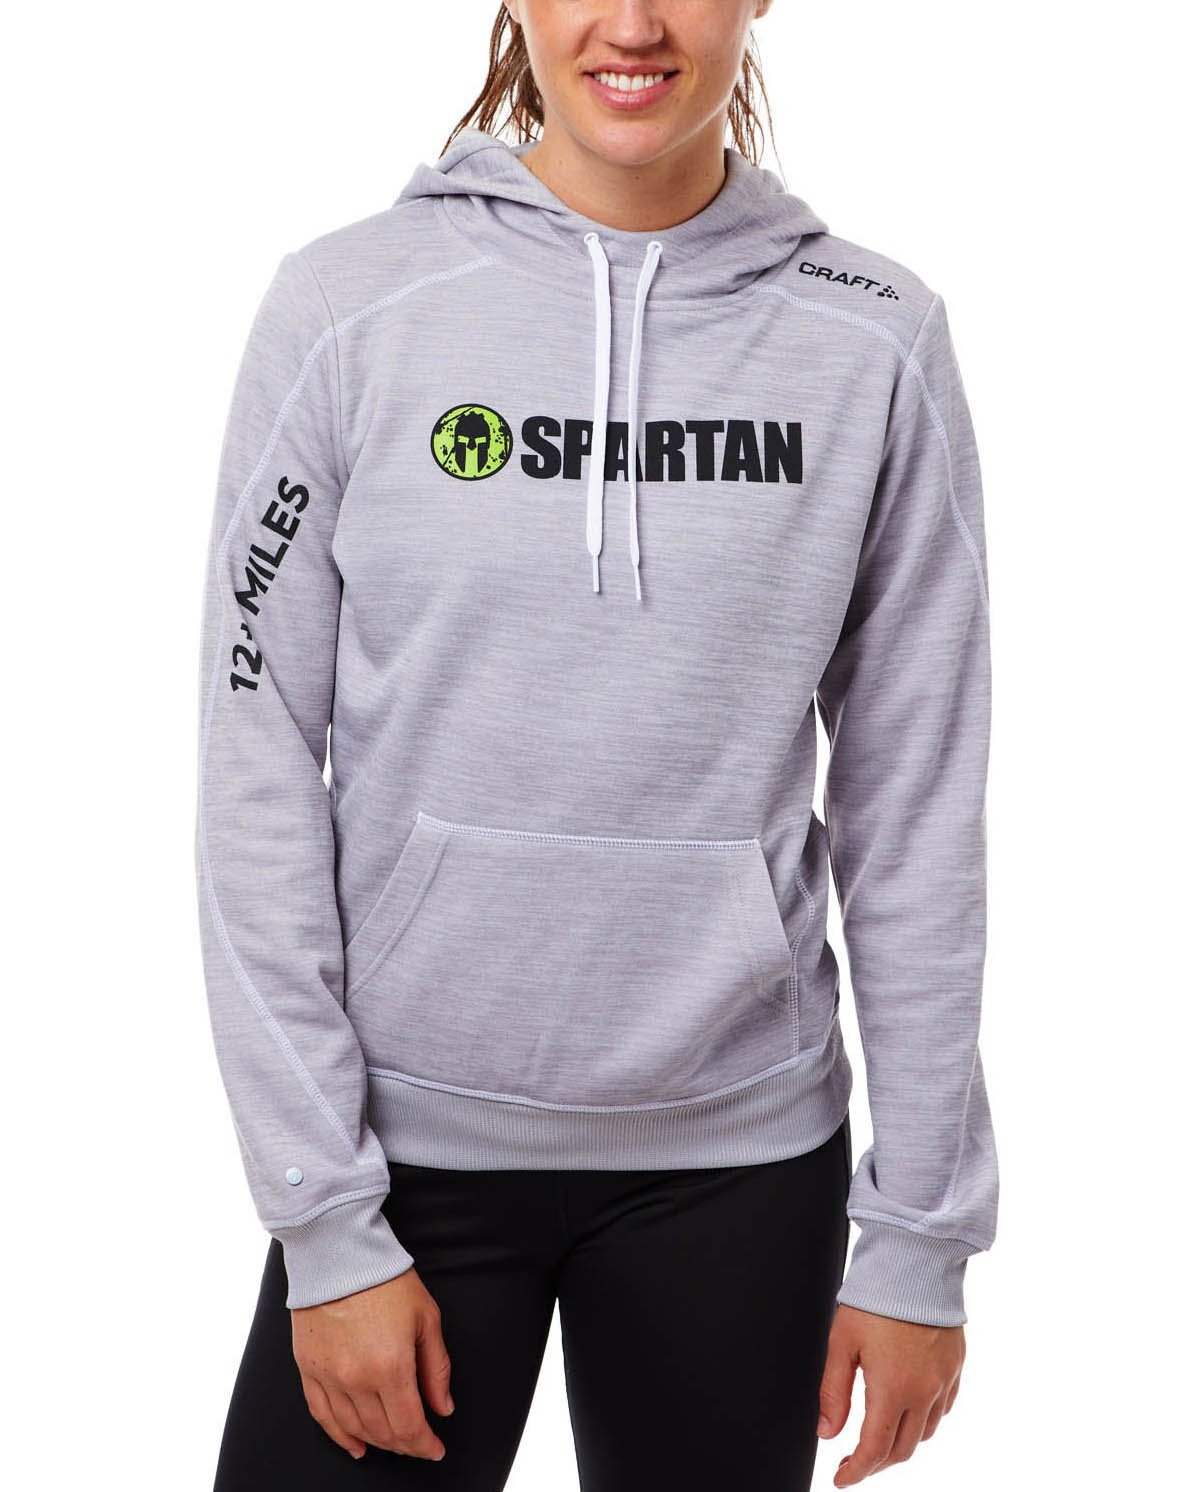 CRAFT SPARTAN By CRAFT Beast Hoodie - Women's Gray XS